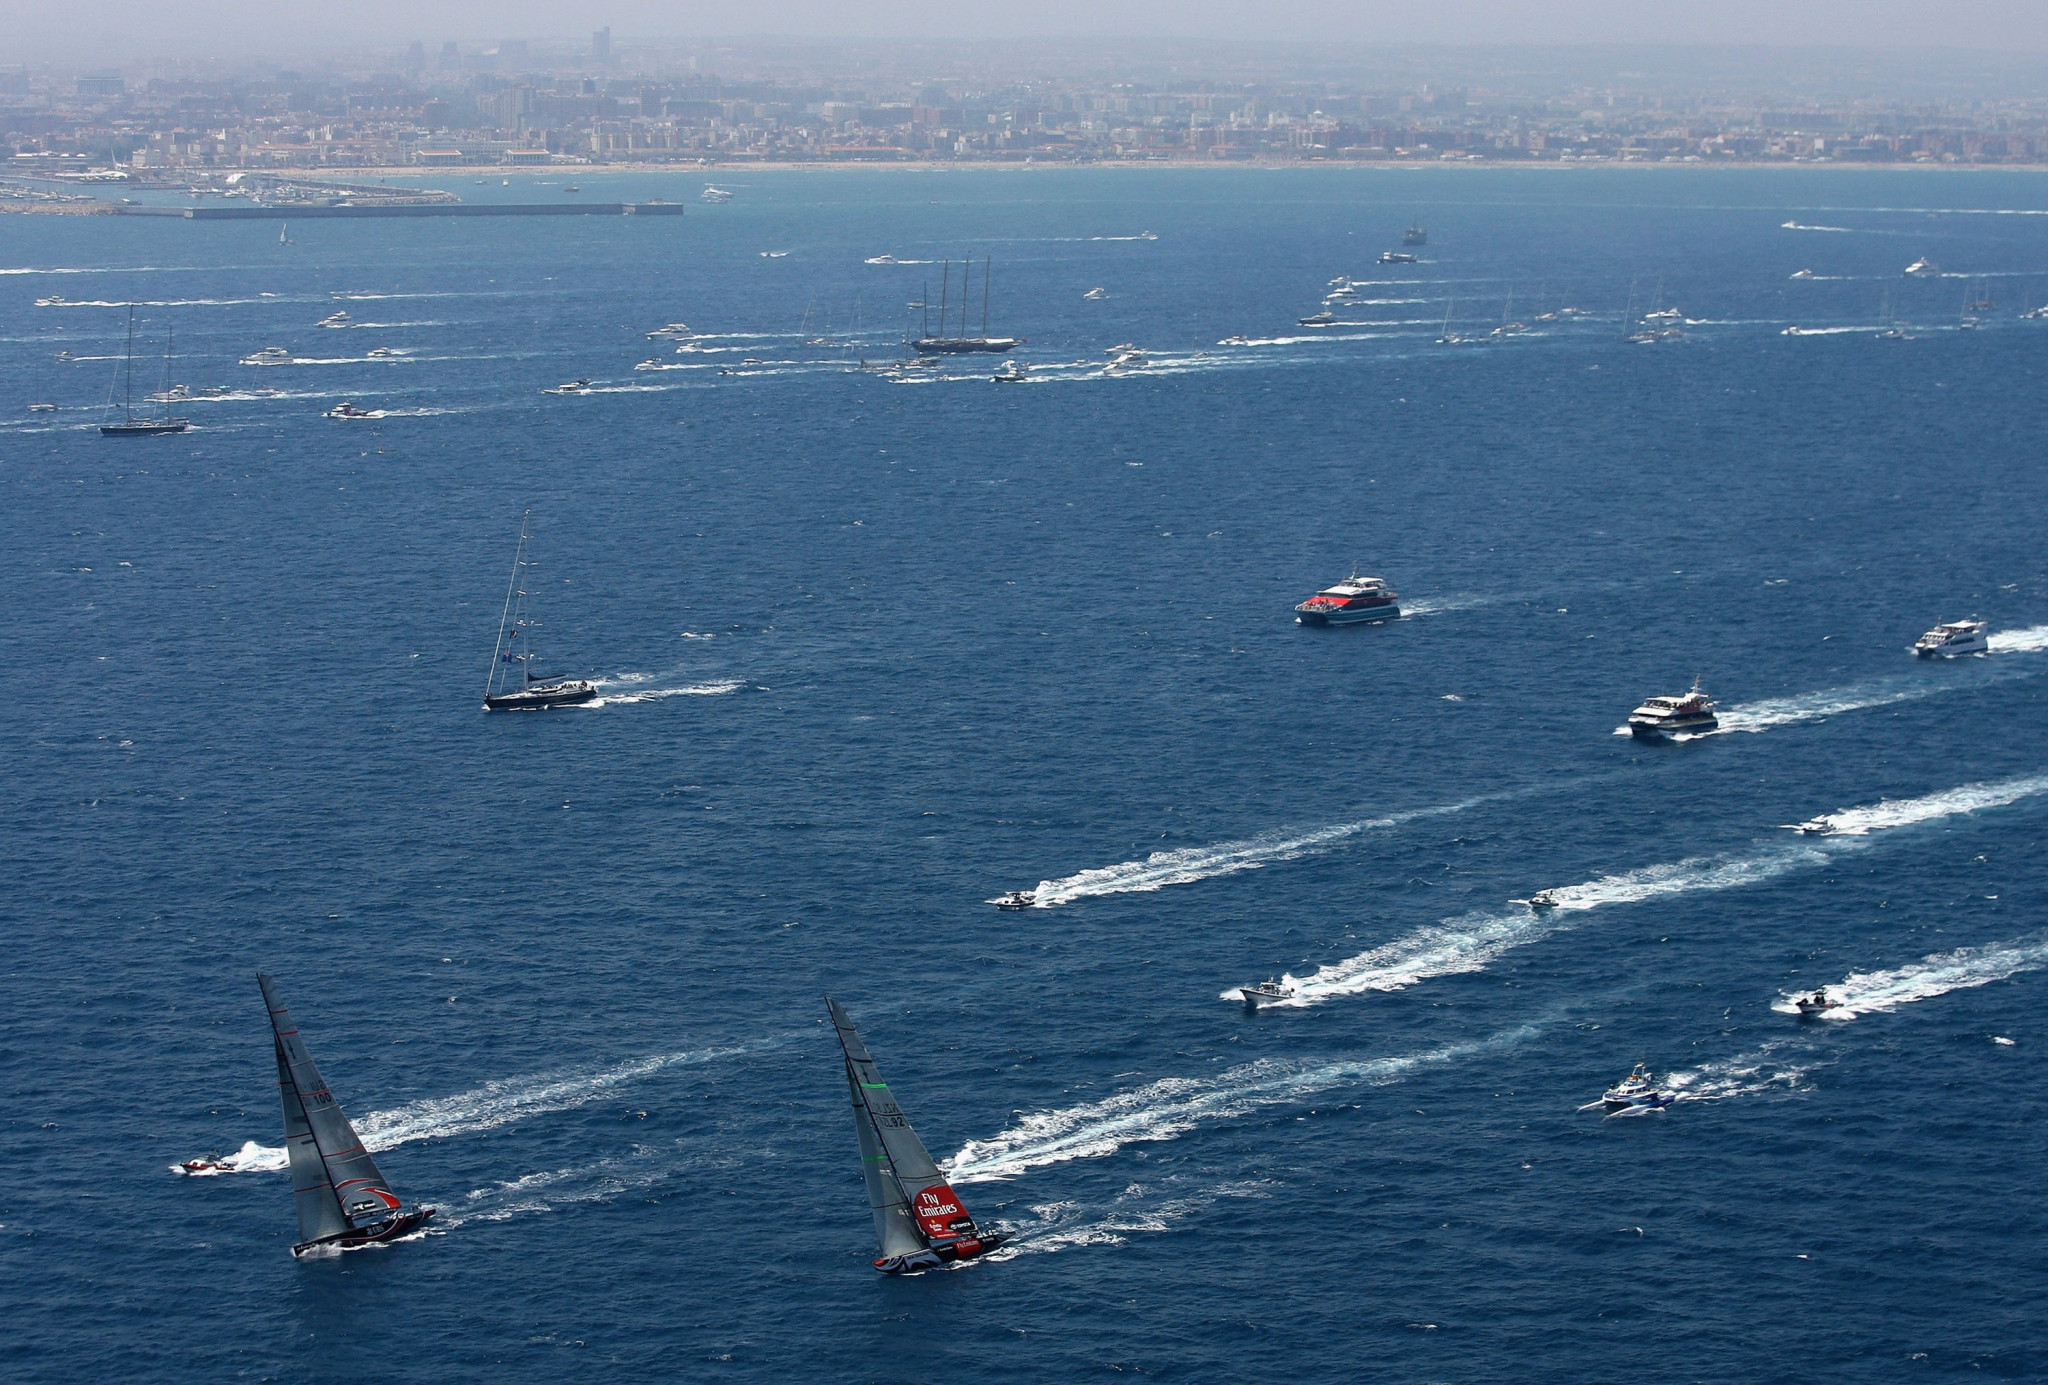 Valencia has previously hosted the America's Cup in 2007 and 2010 ©Getty Images